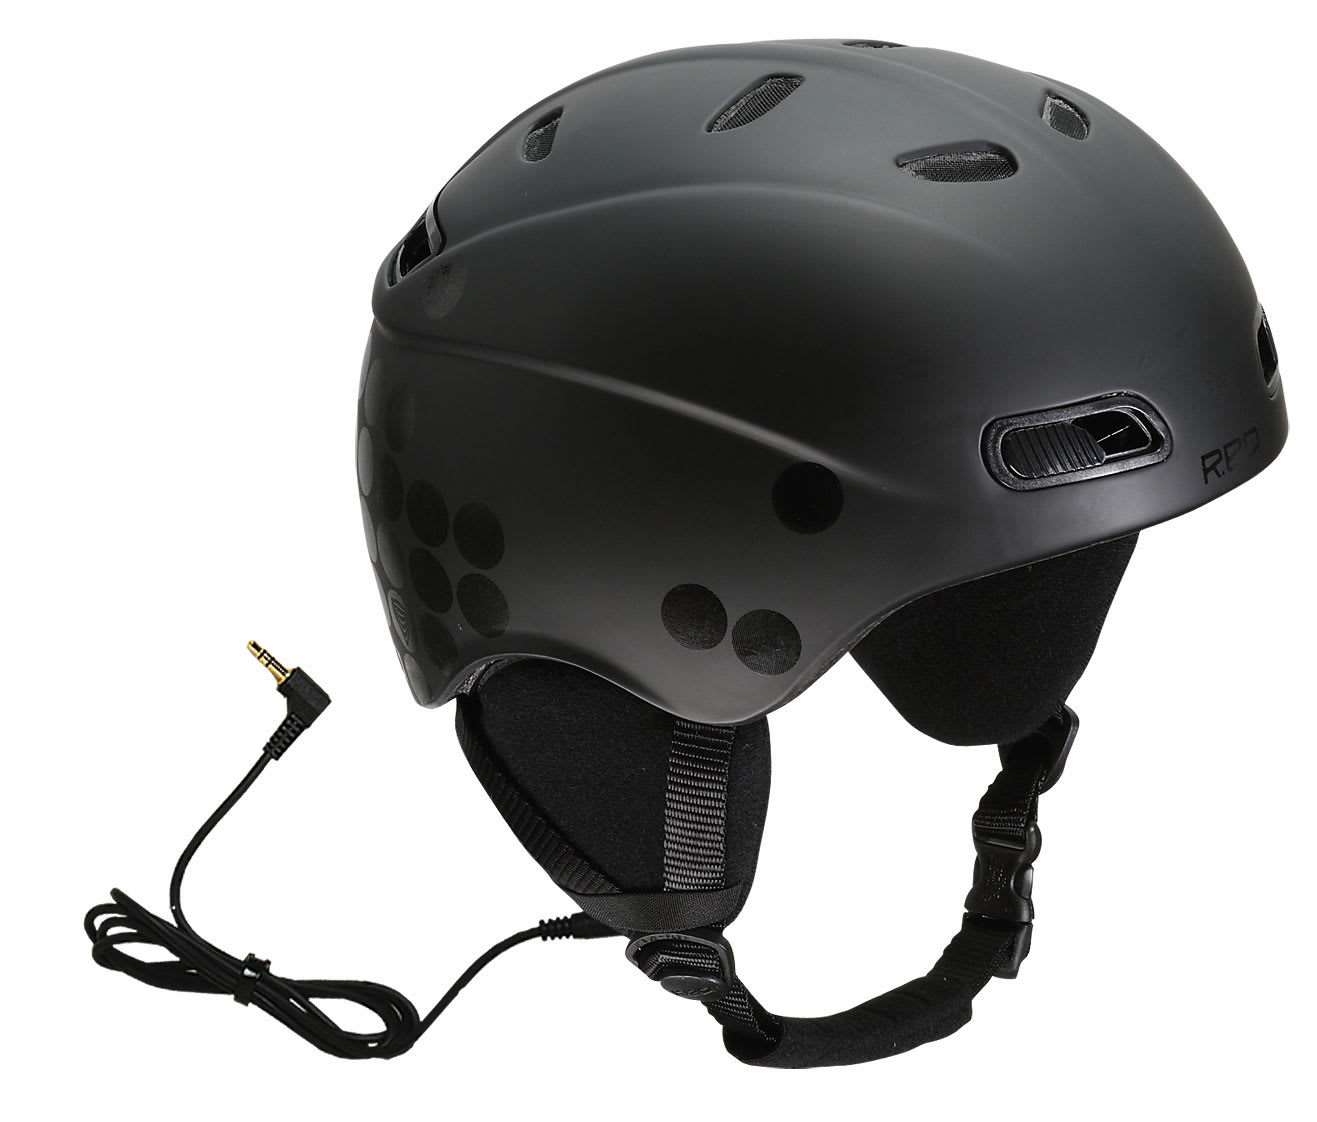 The Best Motorcycle Helmet Headphones In 2019 - Complete guide